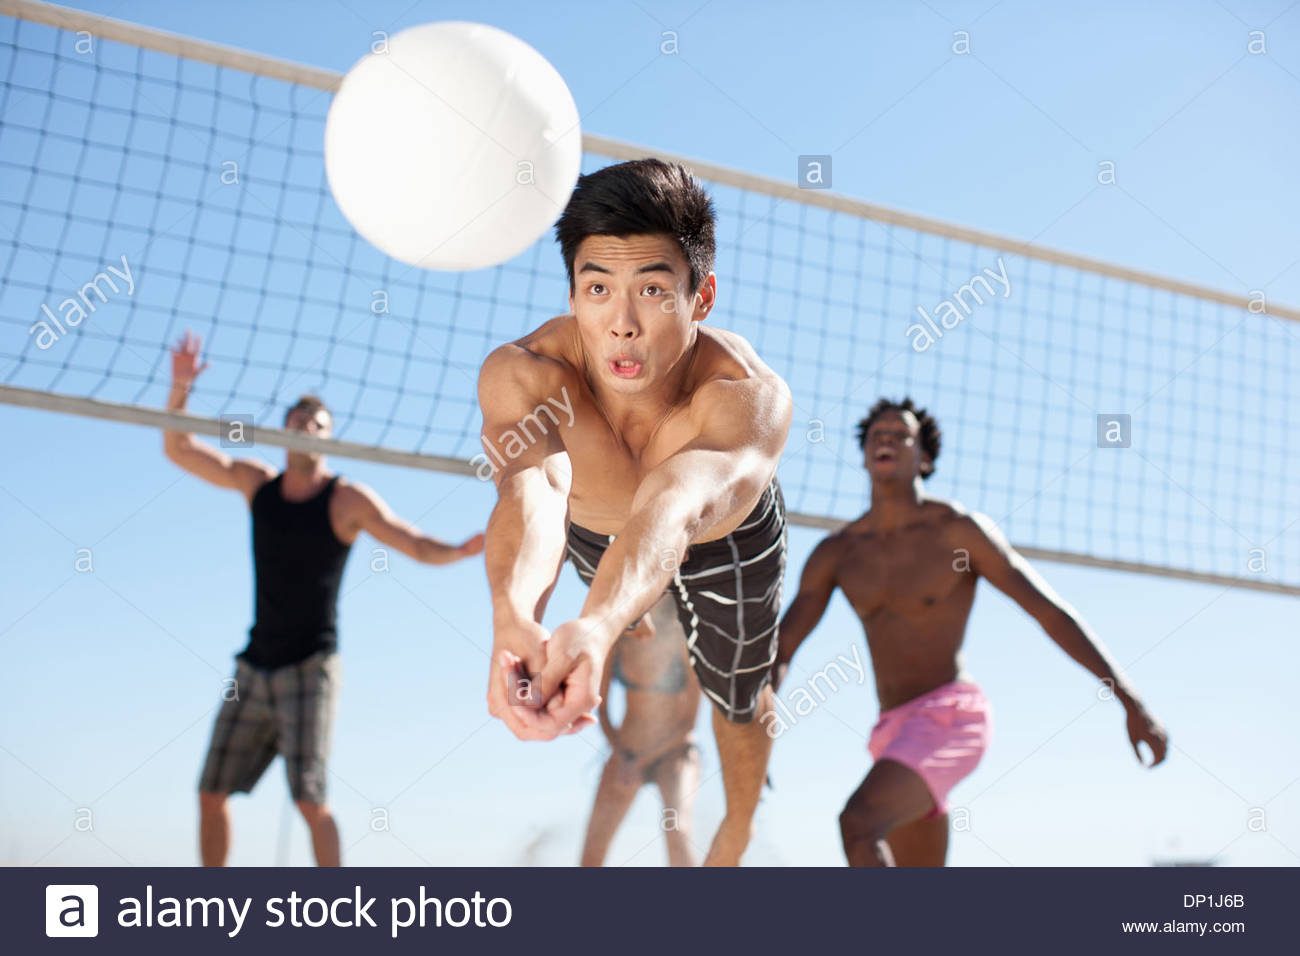 People playing beach volleyball - Stock Image